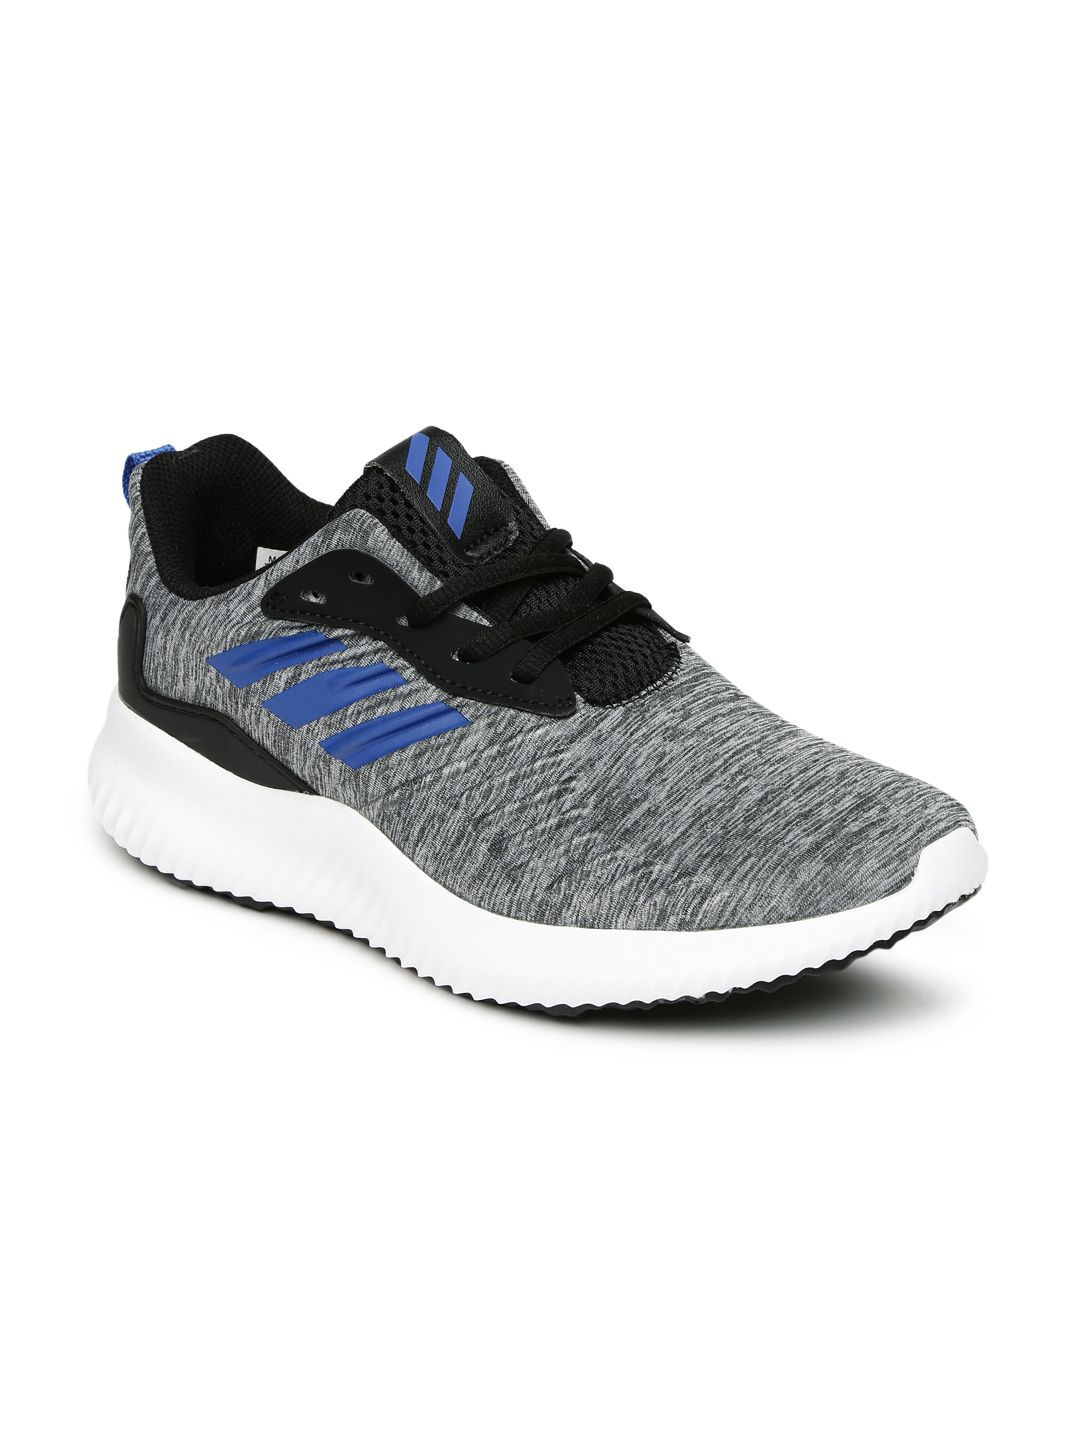 c660a998a Adidas Kids Melange ALPHABOUNCE RC J Running Shoes Price in India- Buy  Adidas Kids Melange ALPHABOUNCE RC J Running Shoes Online at Snapdeal